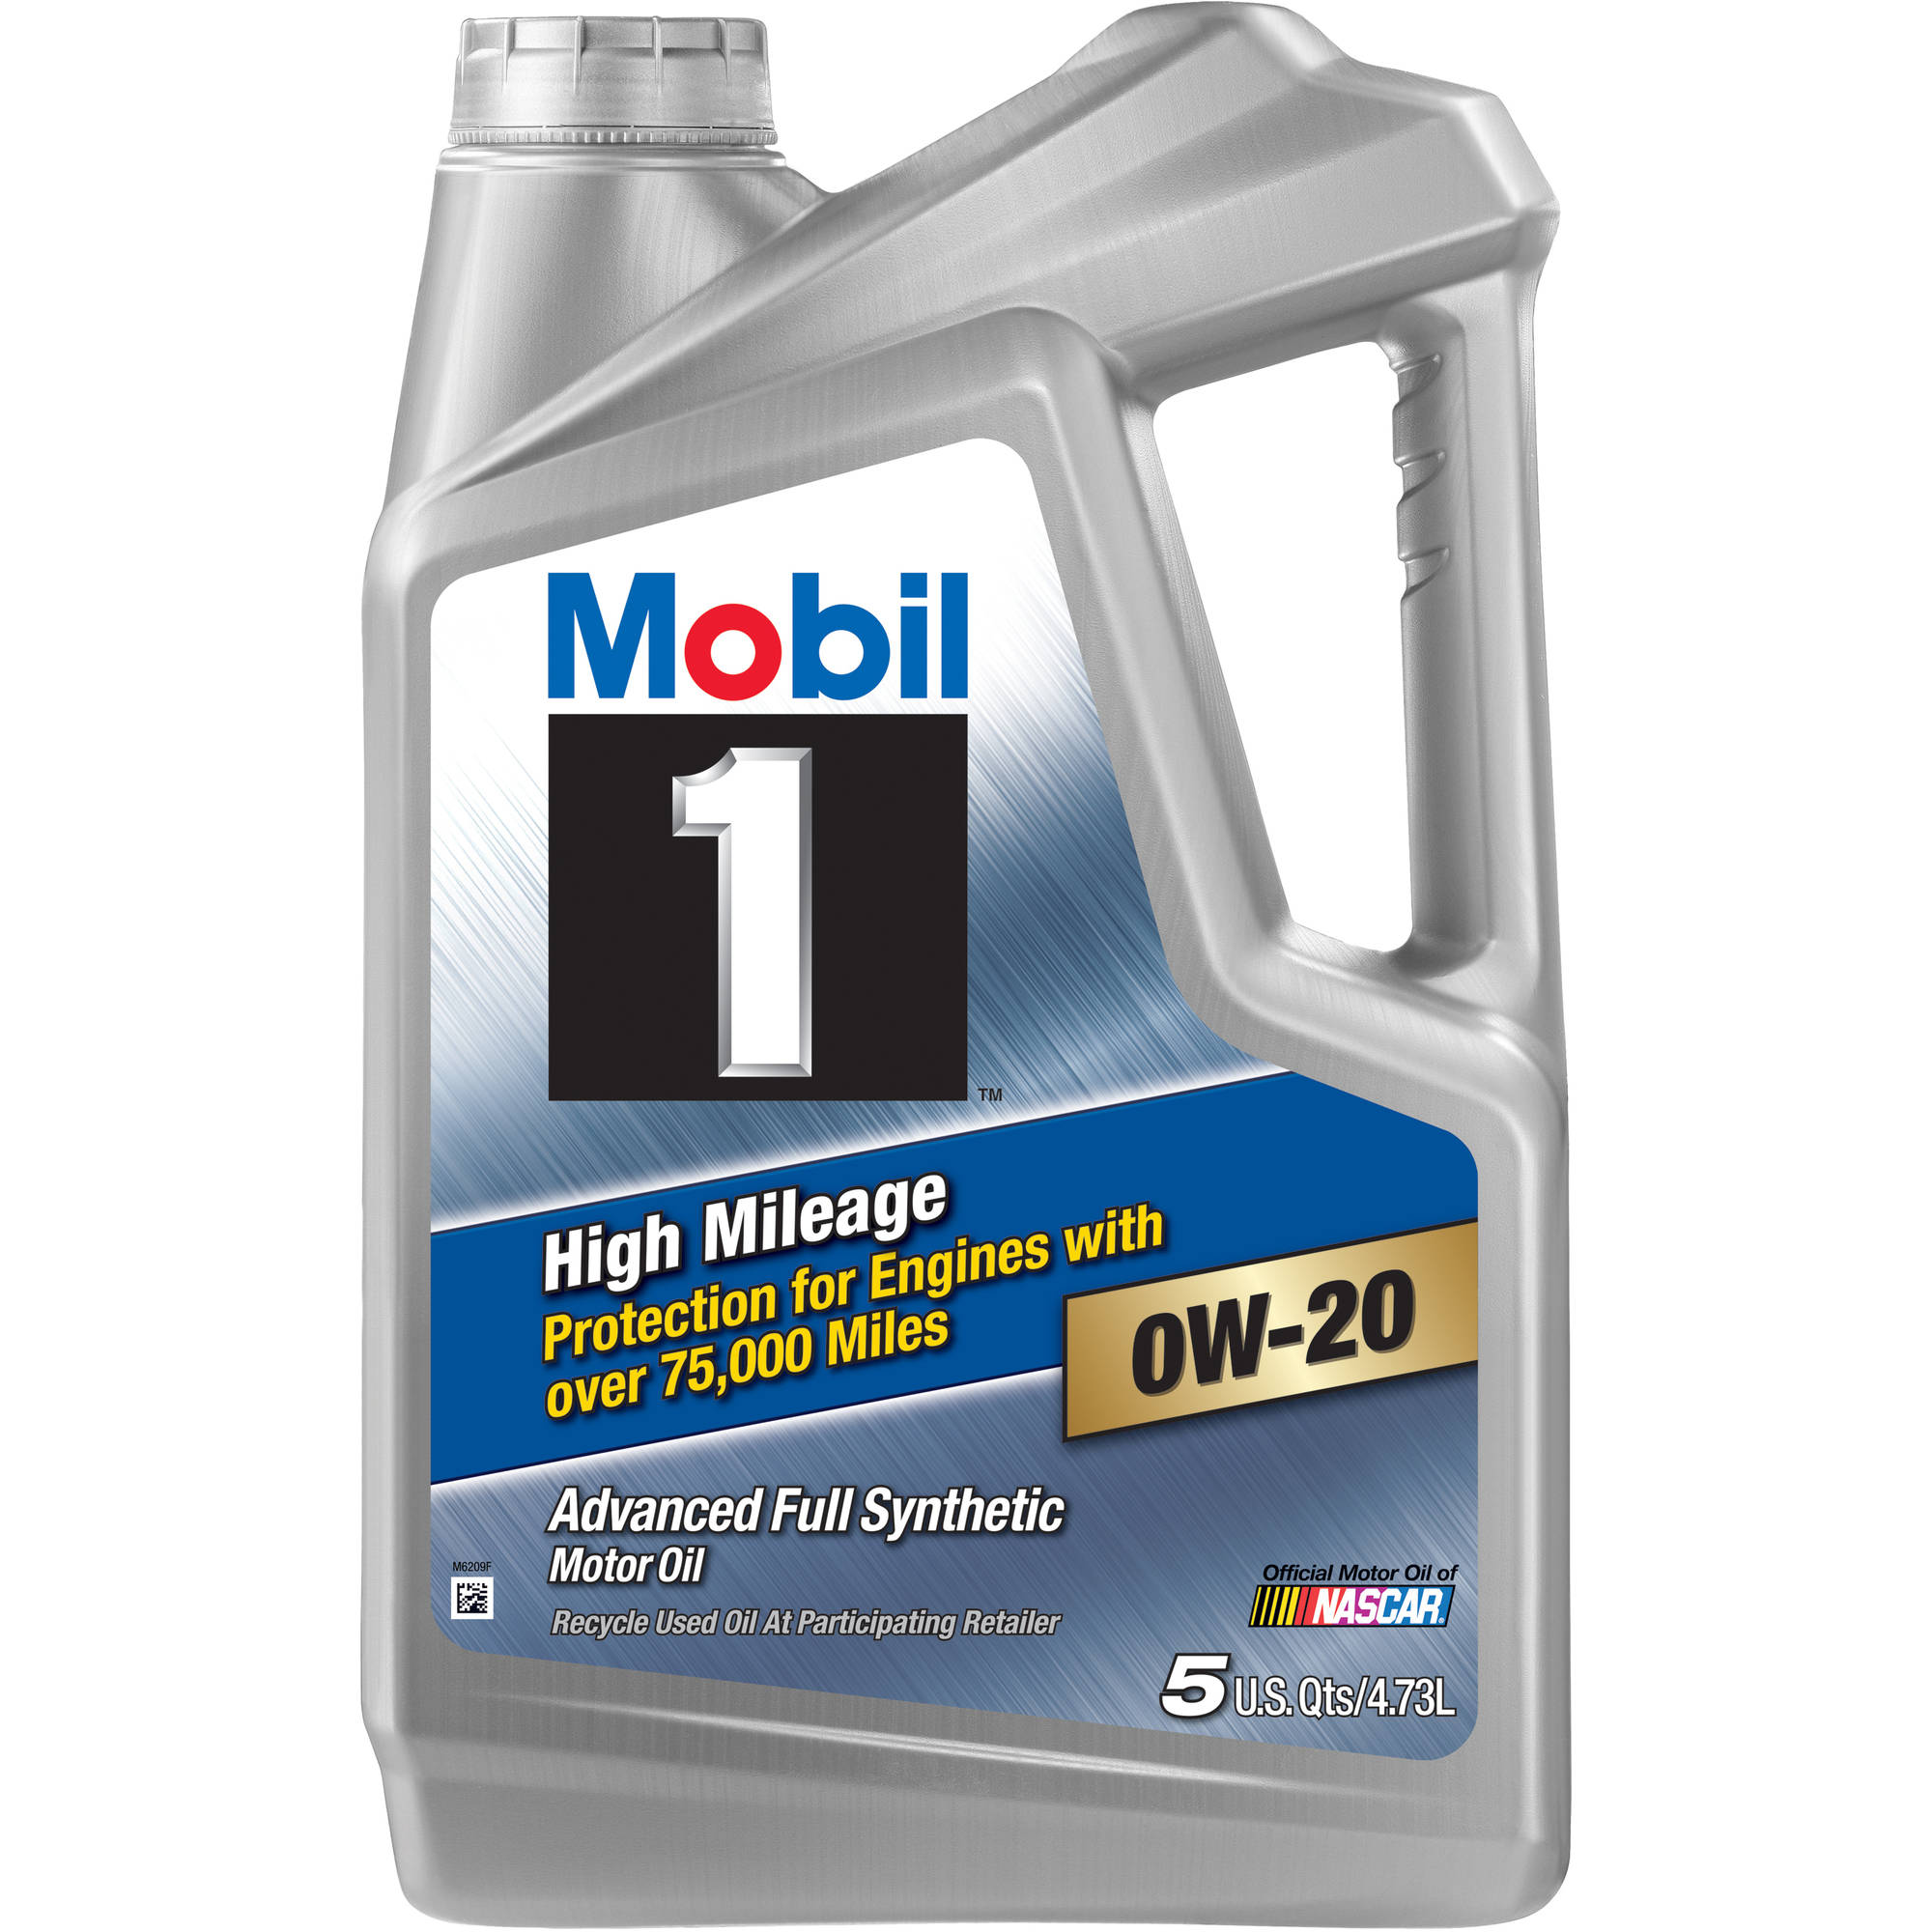 Mobil 1 High Mileage Motor Oil 0W-20, 5 qt